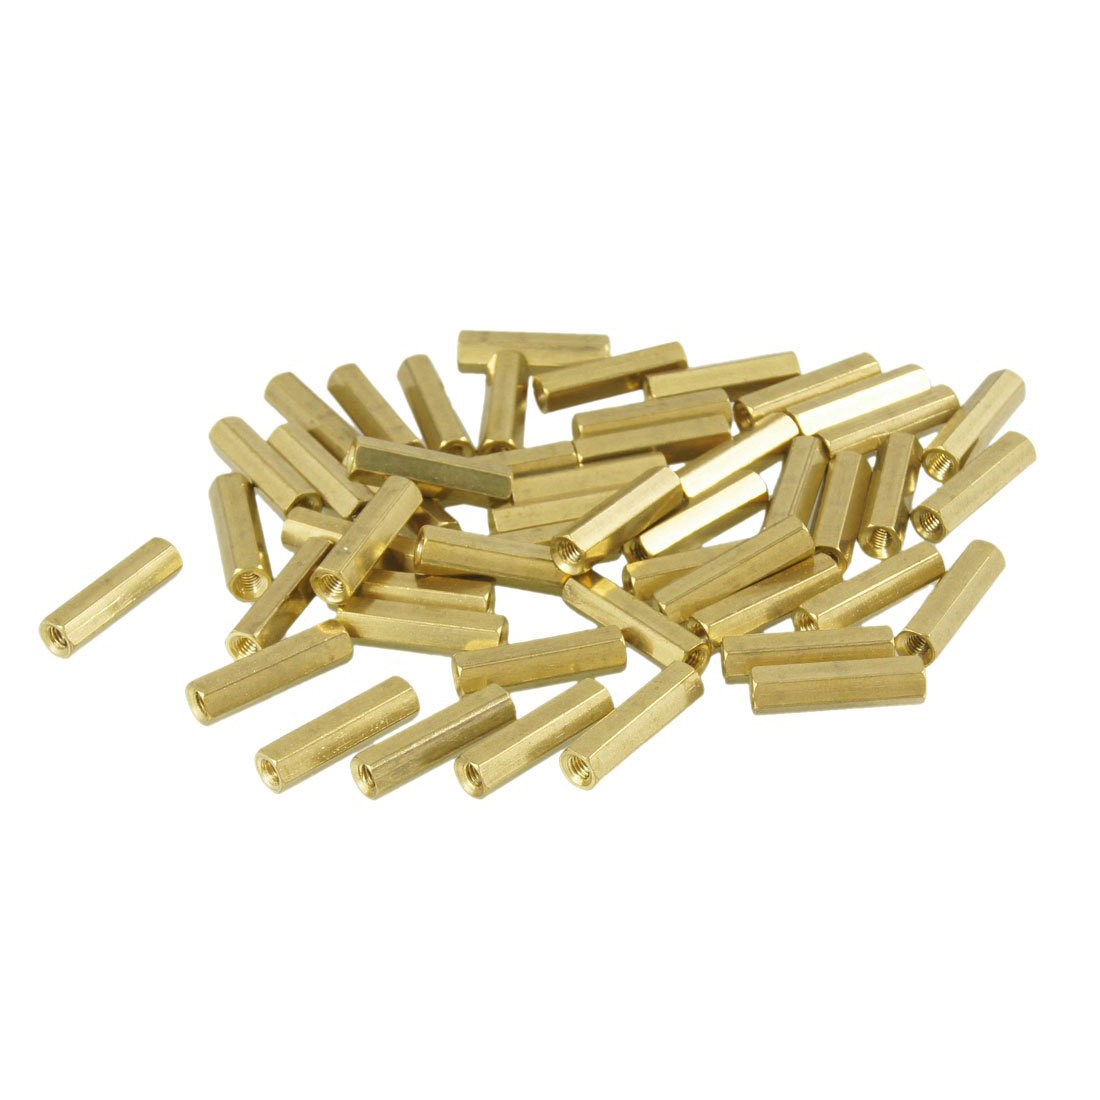 CLOS 50 Pcs Gold Tone Hexagonal 18mm Long M3 Female Thread Standoff Spacer<br><br>Aliexpress